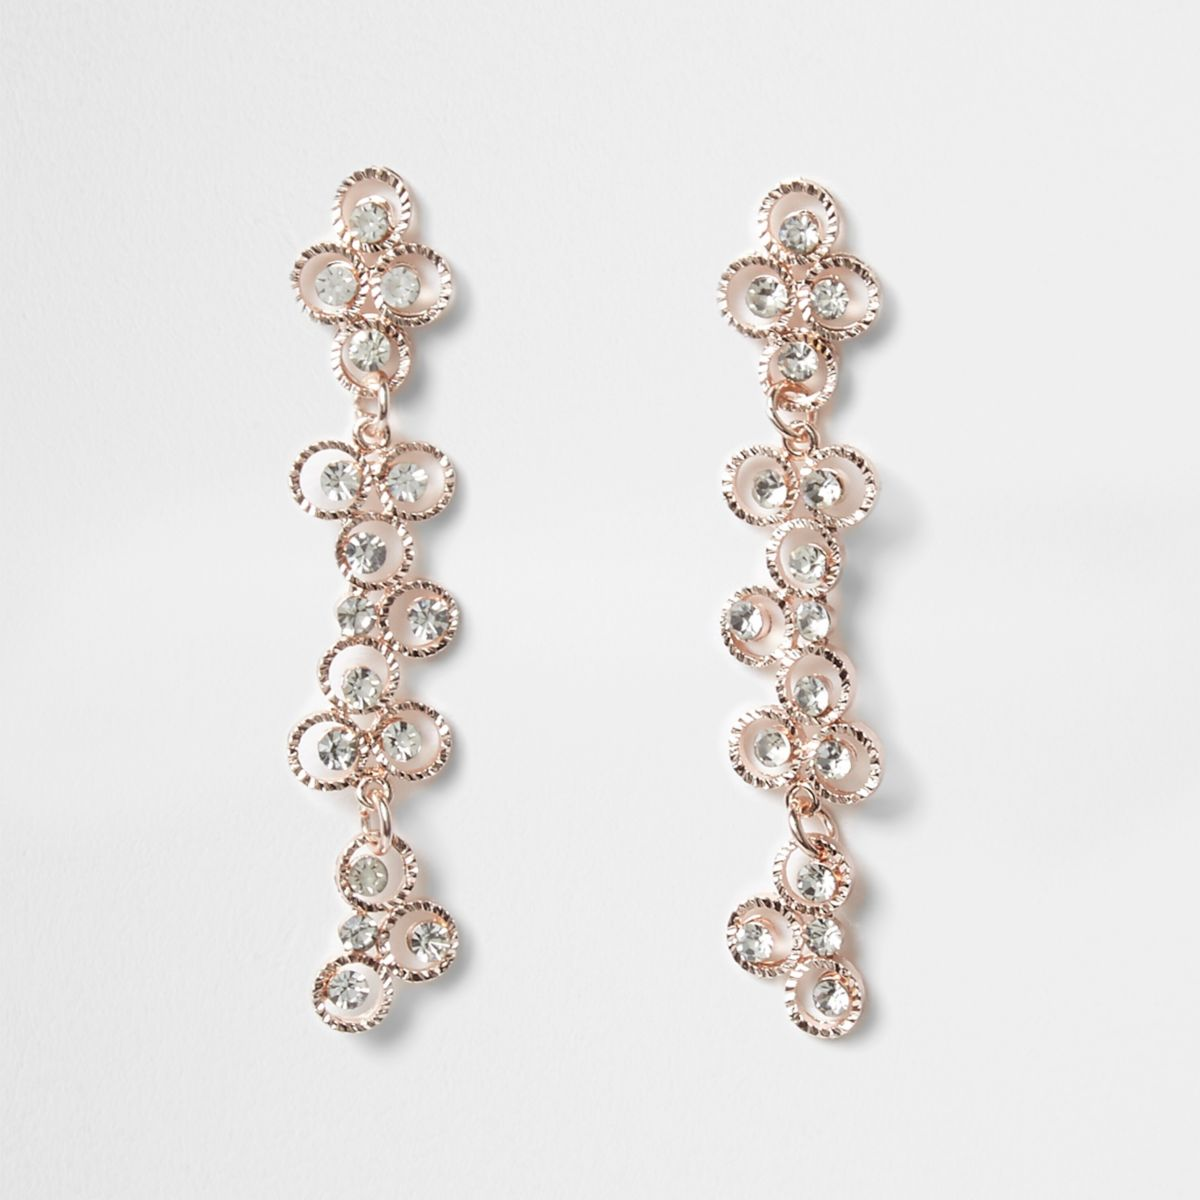 Rose gold tone diamante flower drop earrings